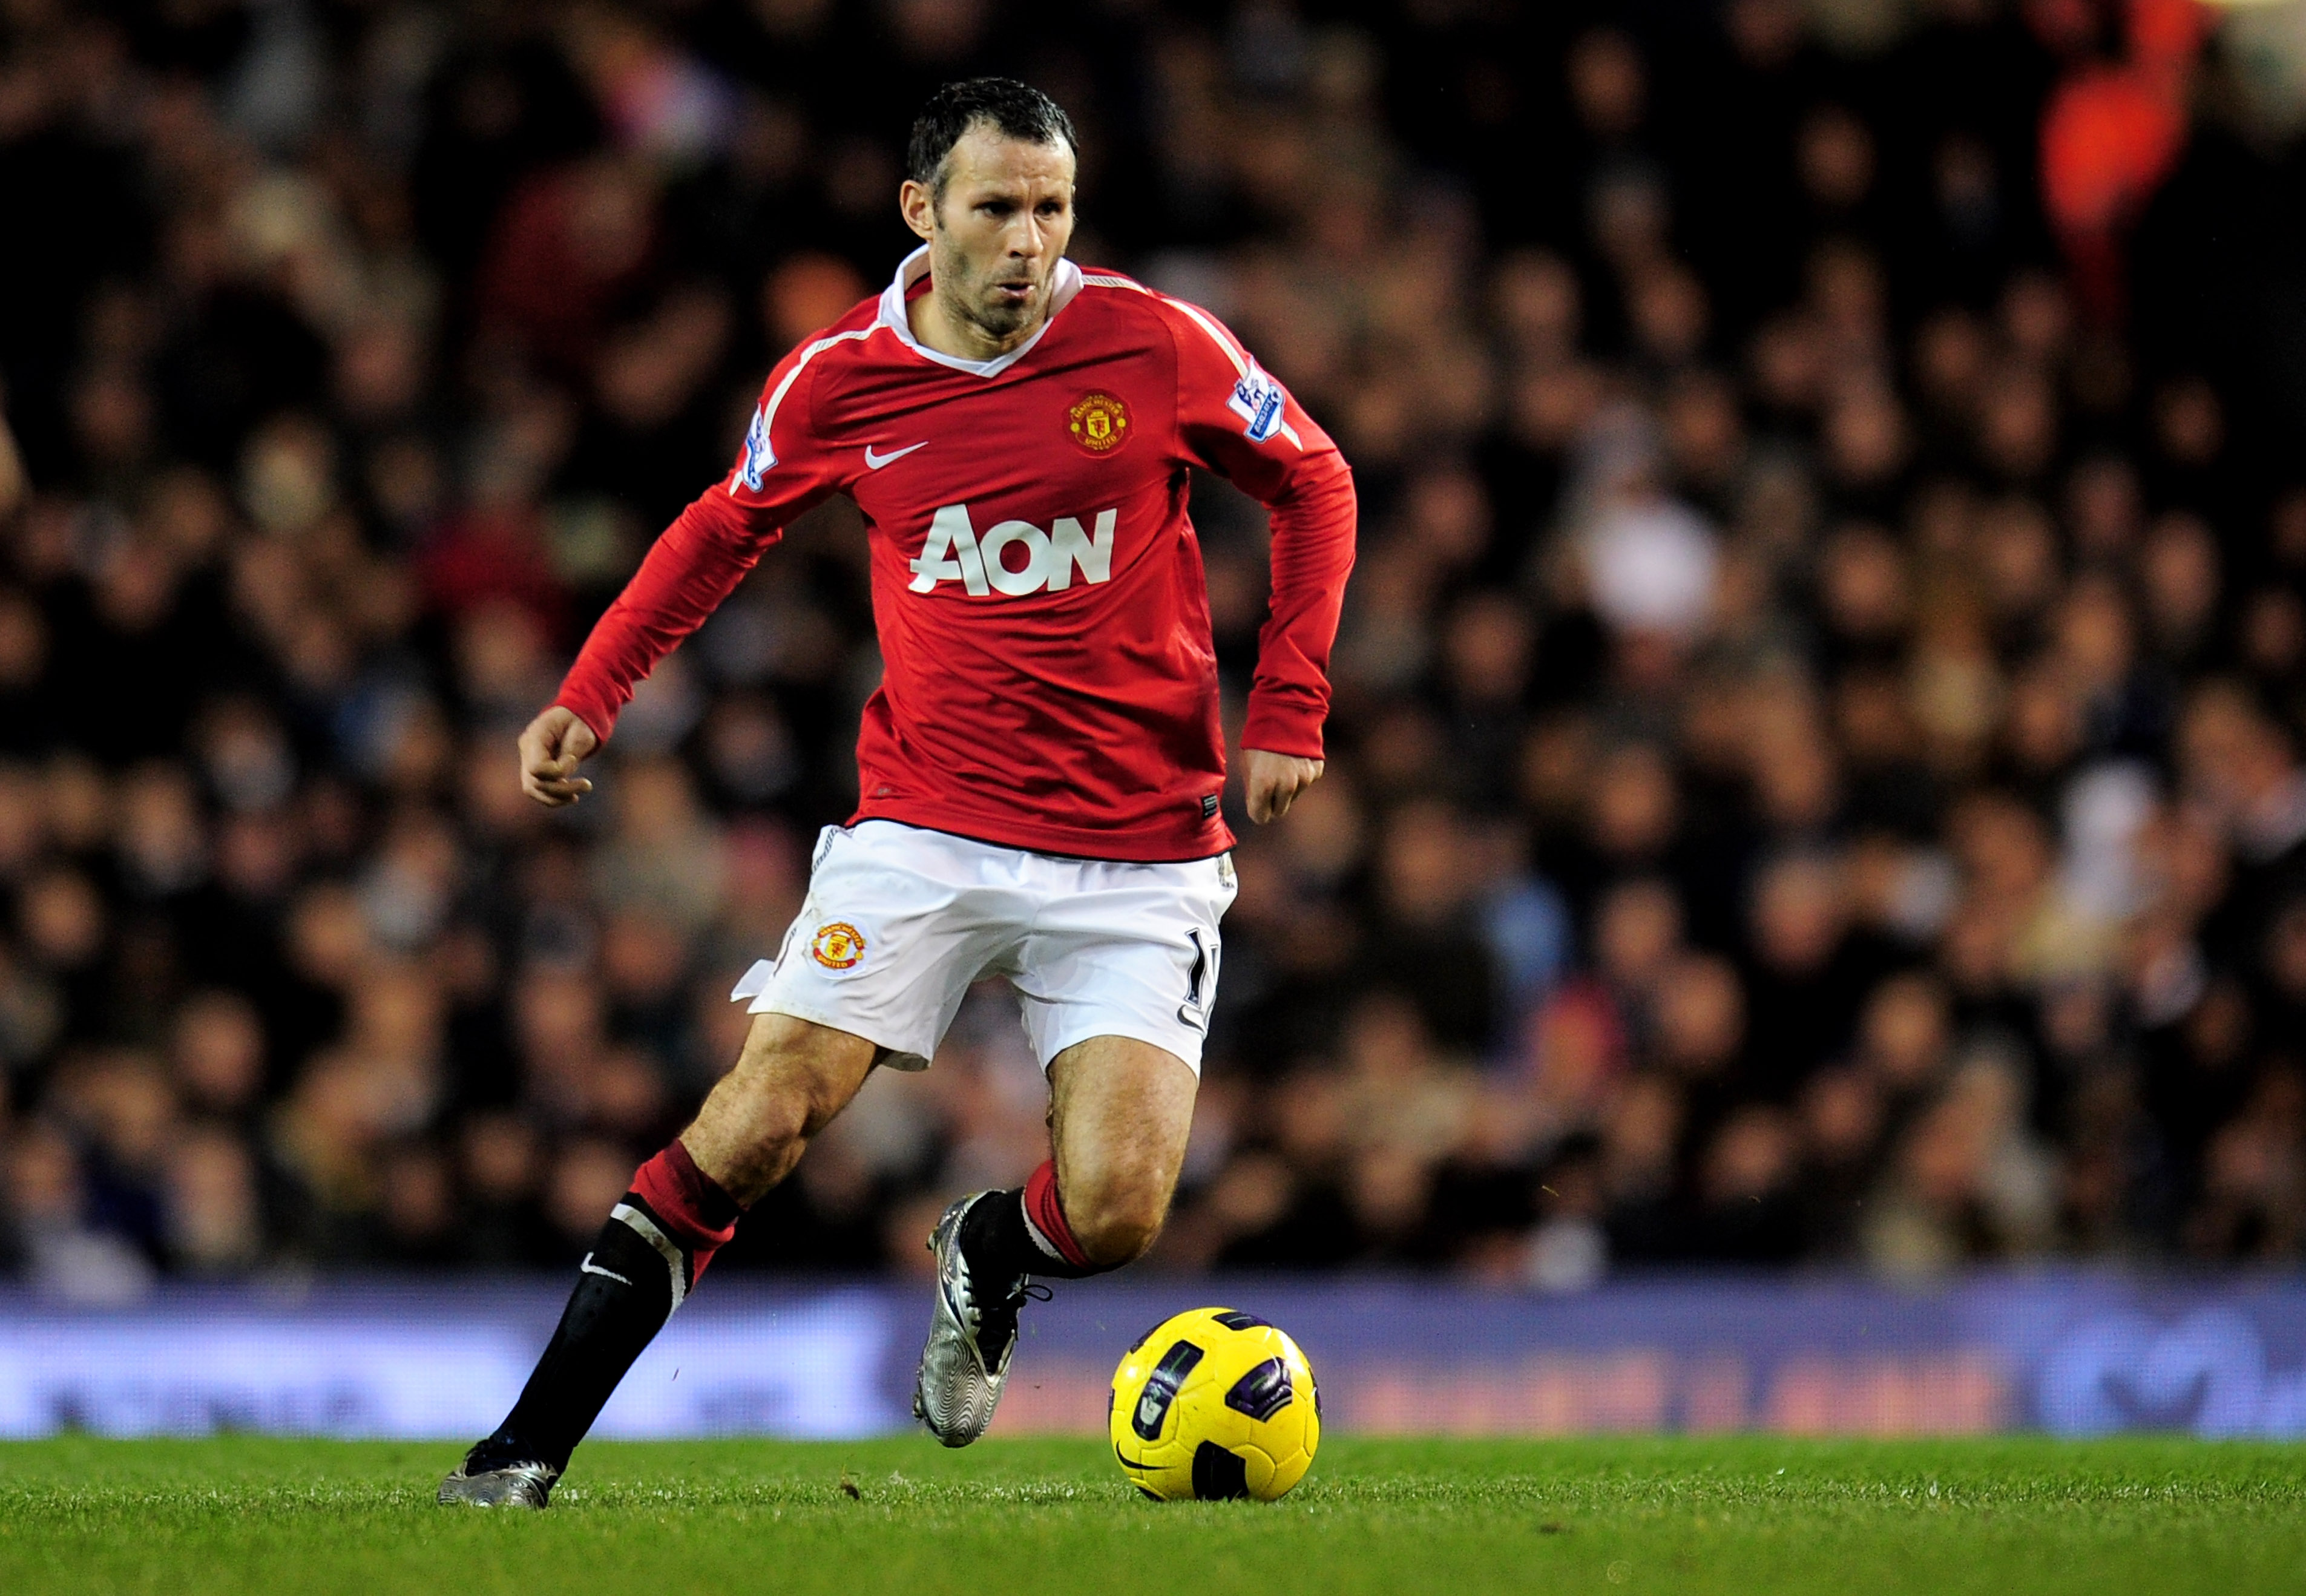 LONDON, ENGLAND - JANUARY 16:  Ryan Giggs of Manchester United runs with the ball during the Barclays Premier League match between Tottenham Hotspur and Manchester United at White Hart Lane on January 16, 2011 in London, England.  (Photo by Shaun Botteril